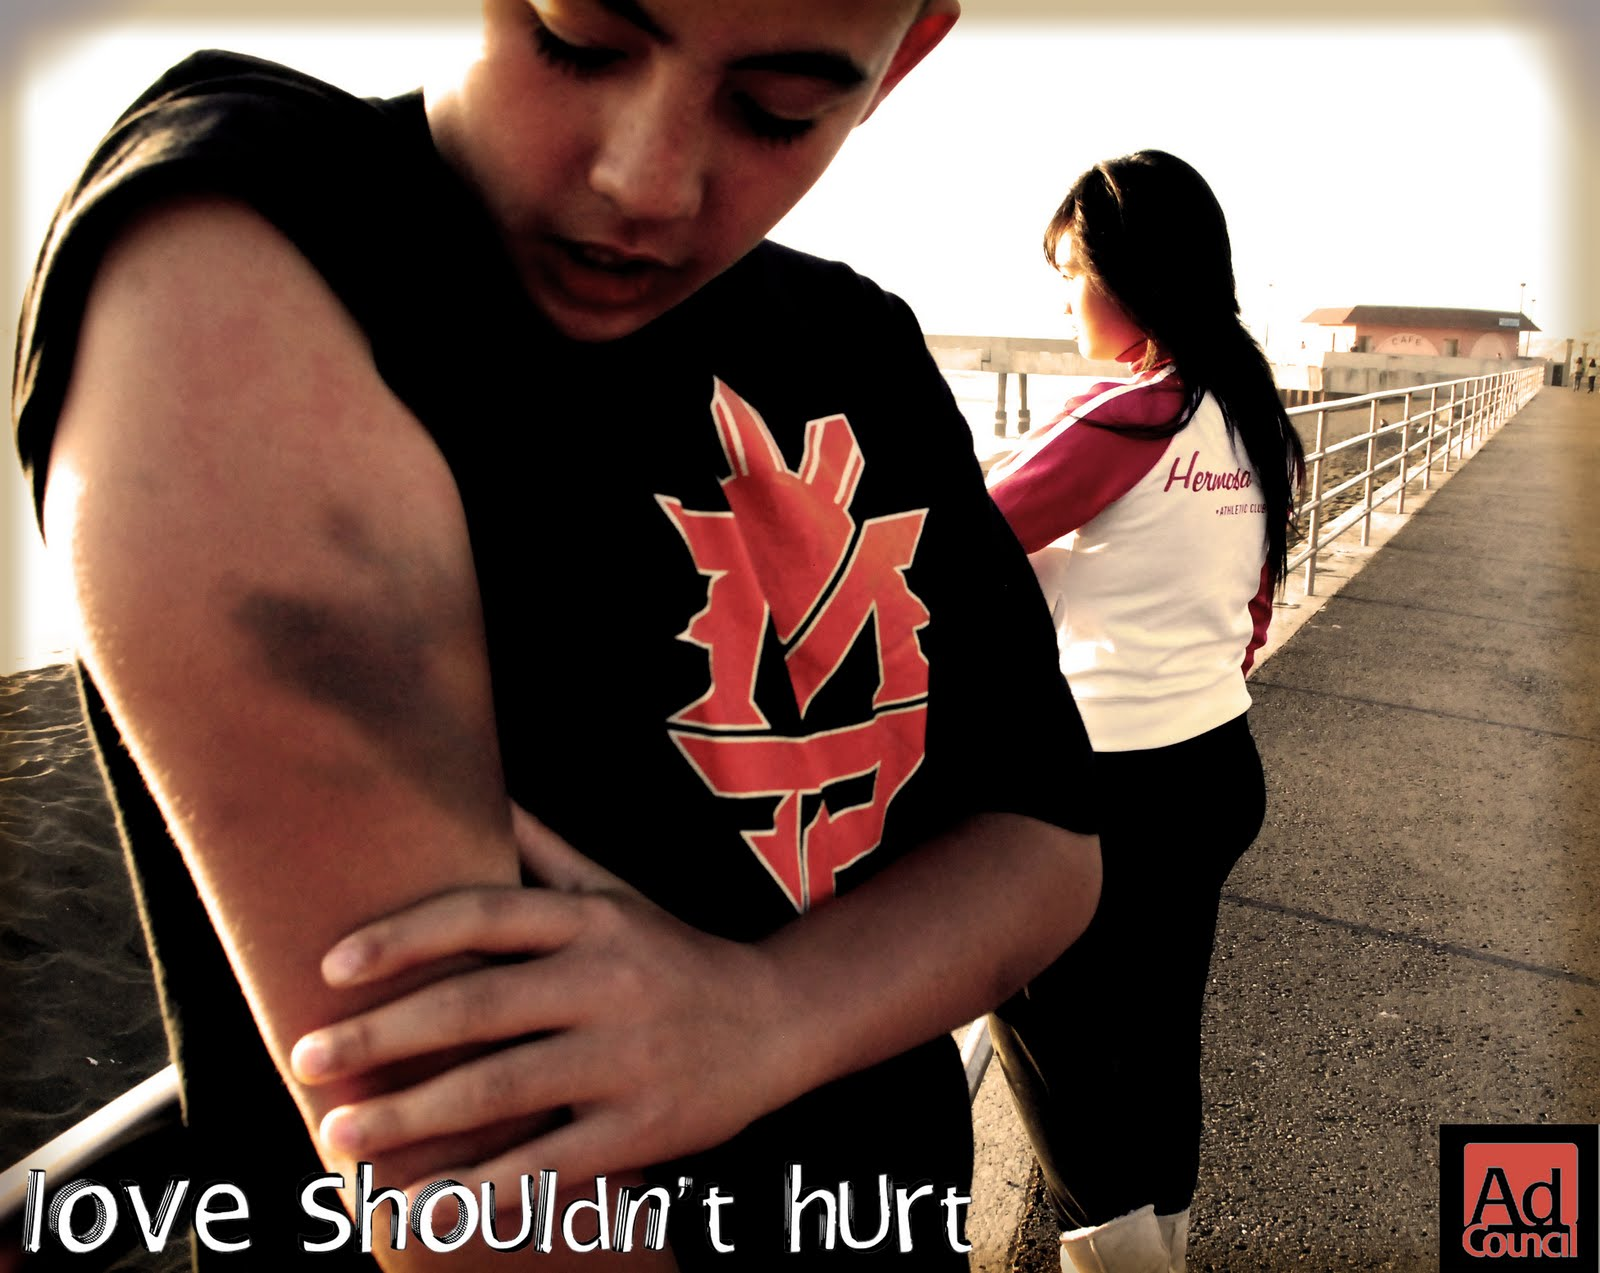 10 Facts About Teen Dating Violence and Abuse -